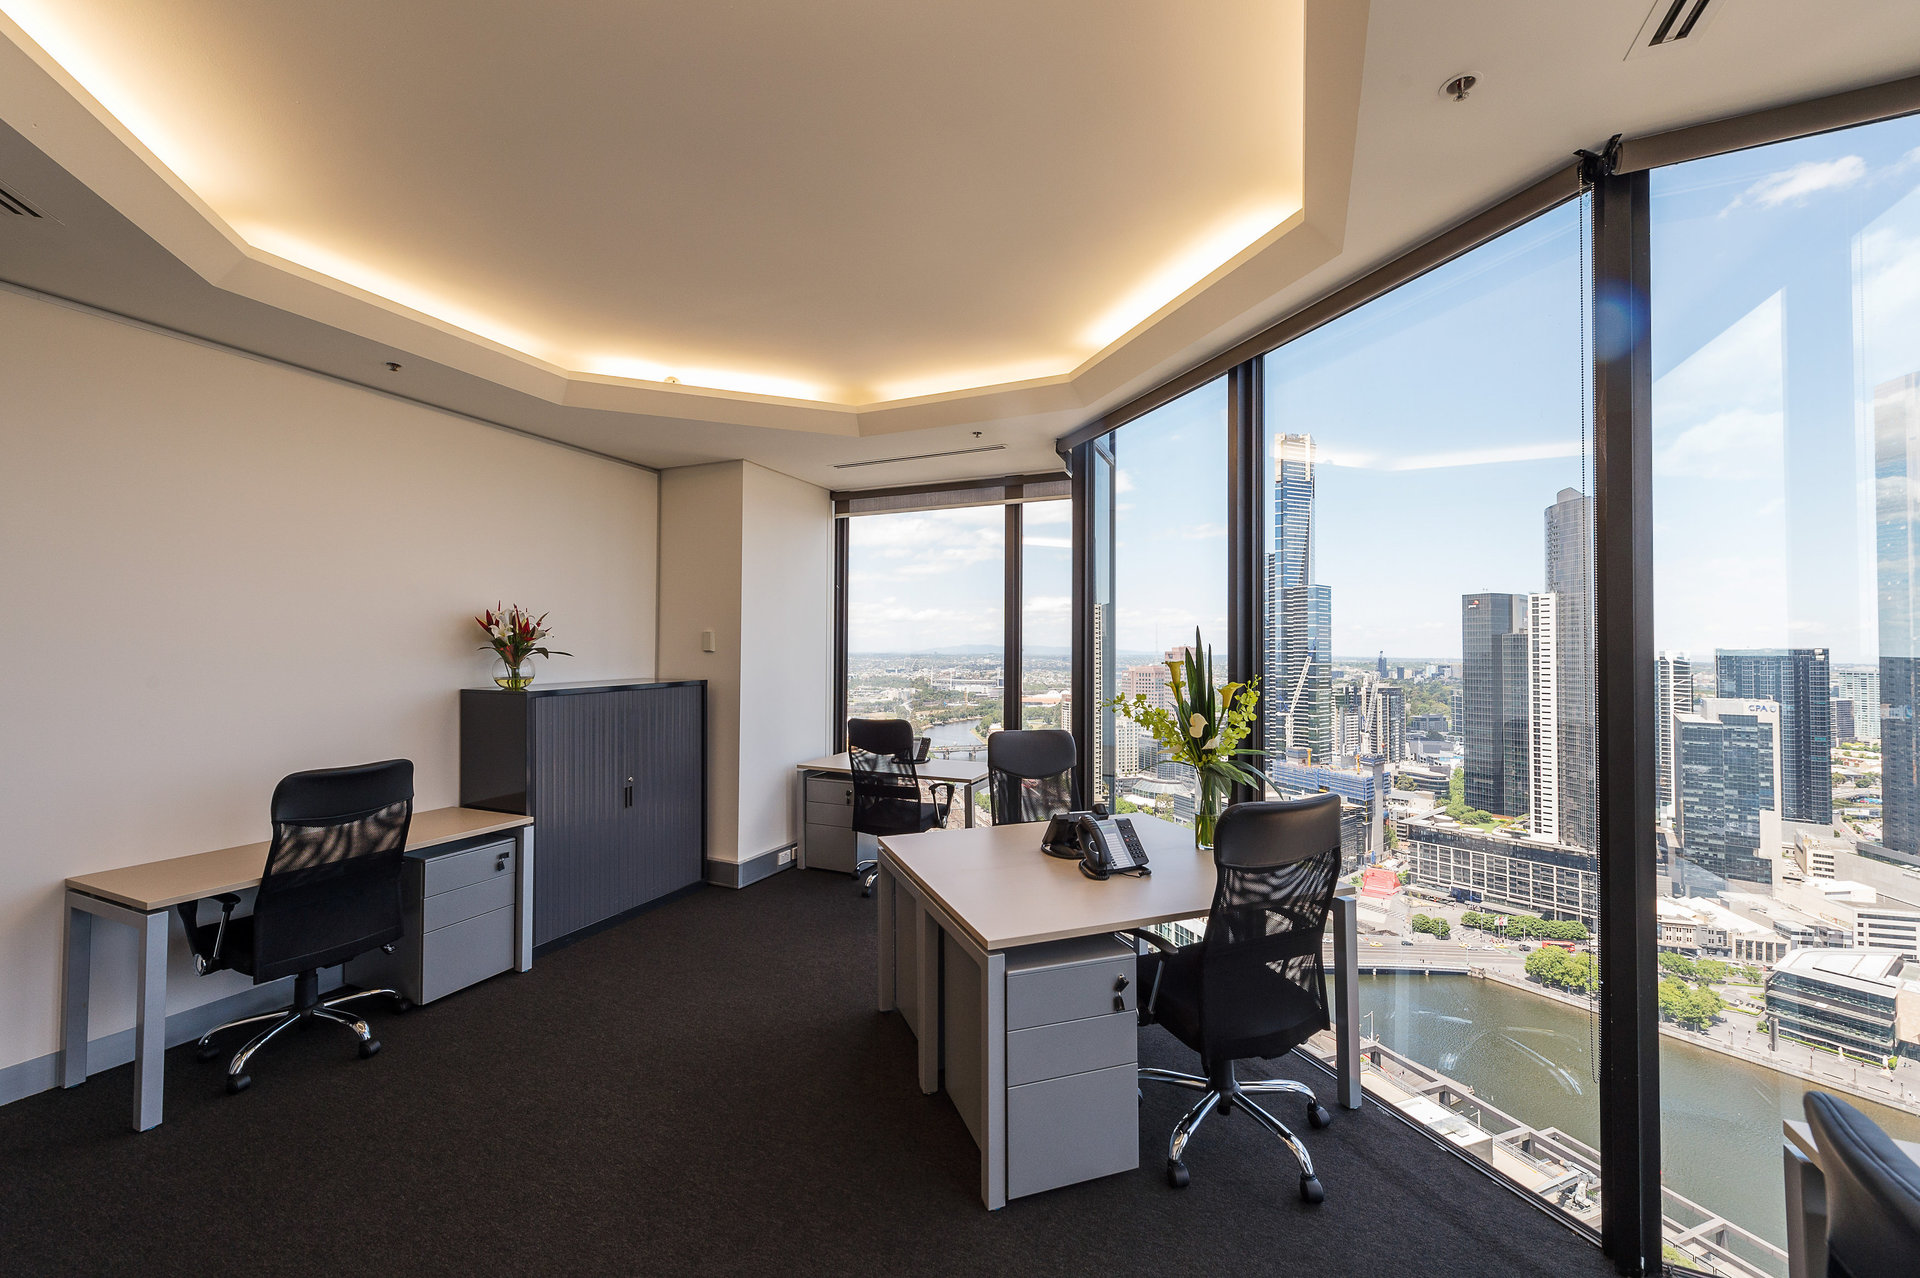 14 Square Metre Office Space available at Rialto Tower, 525 Collins St – Prestigious Location – All Inclusive Cost